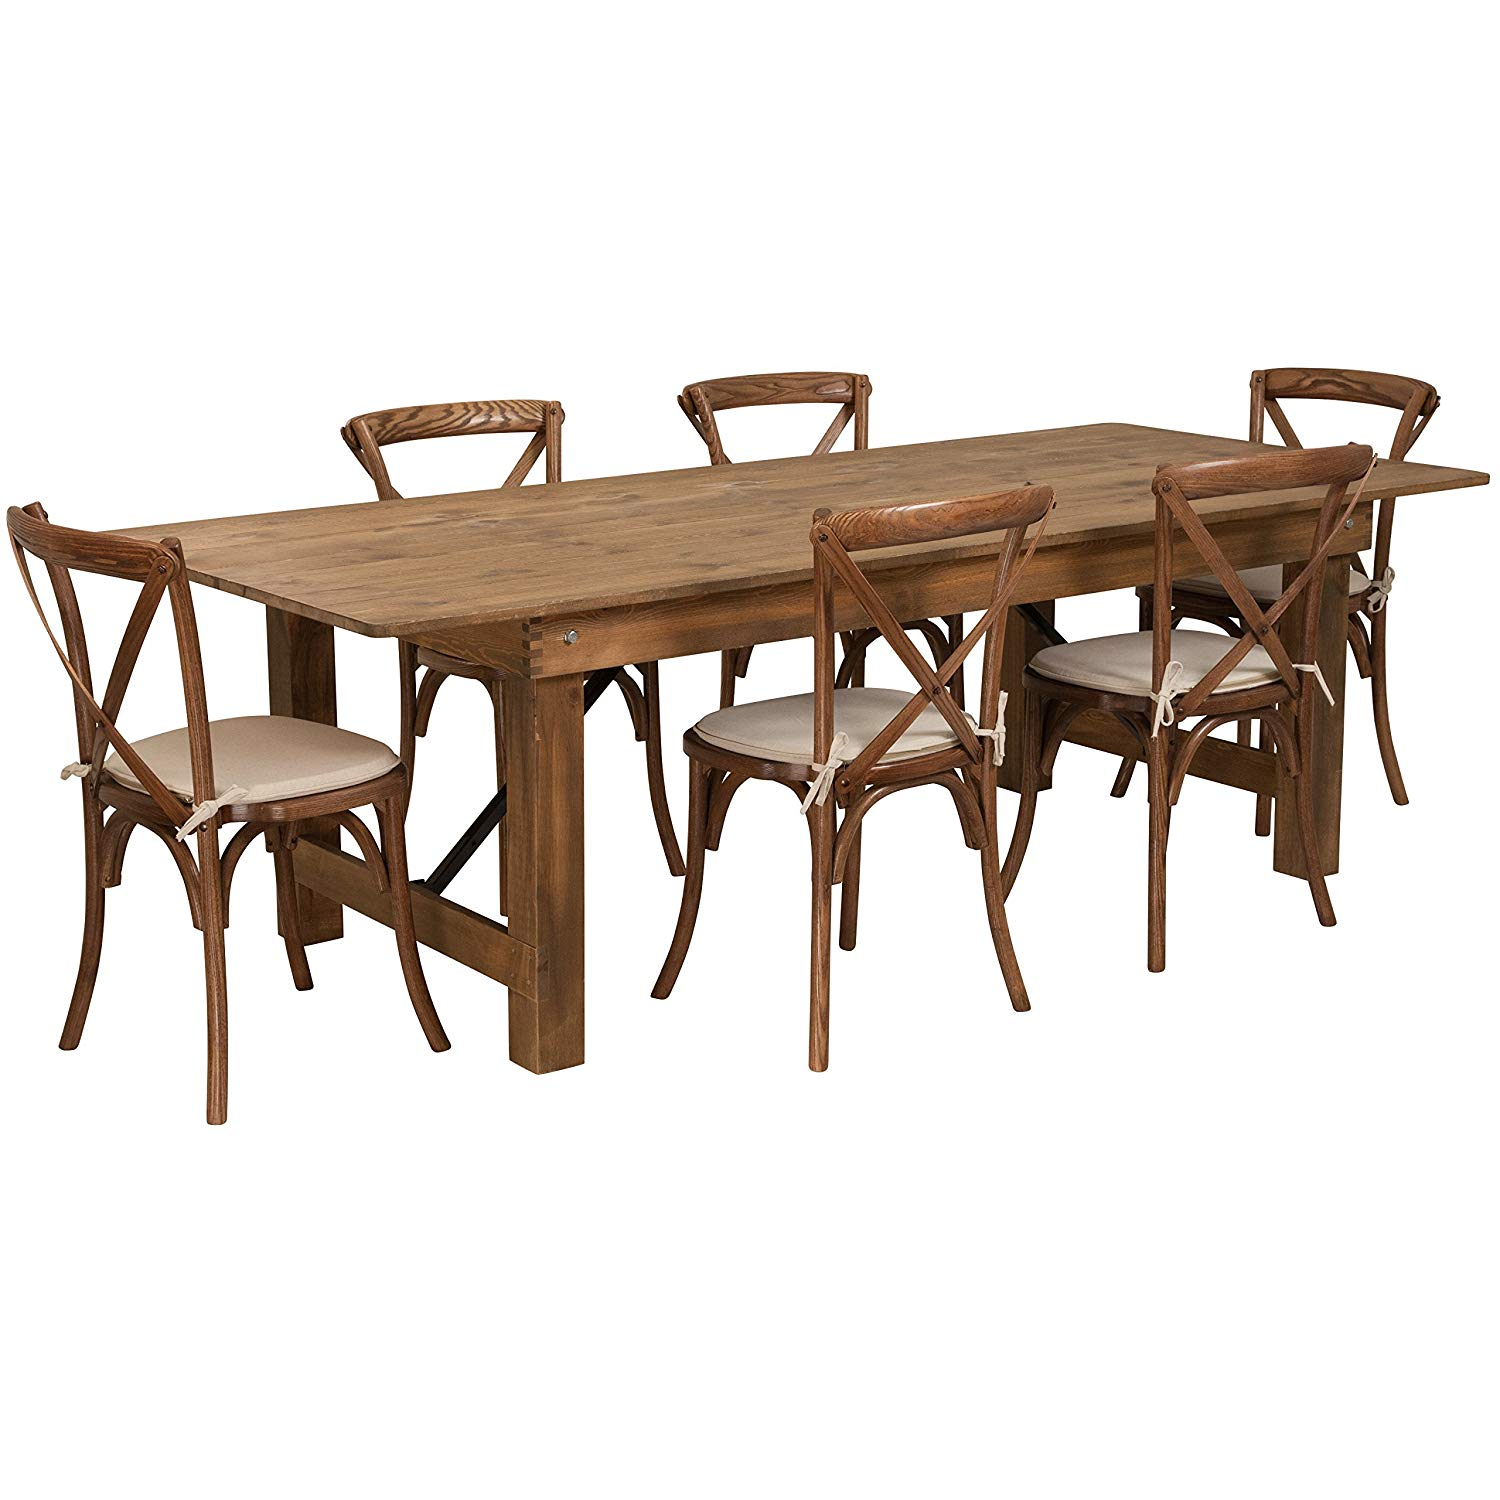 B Rustic Farm Table Set With 6 Cross Back Chairs And Burlap Cushions   Rustic  Farm